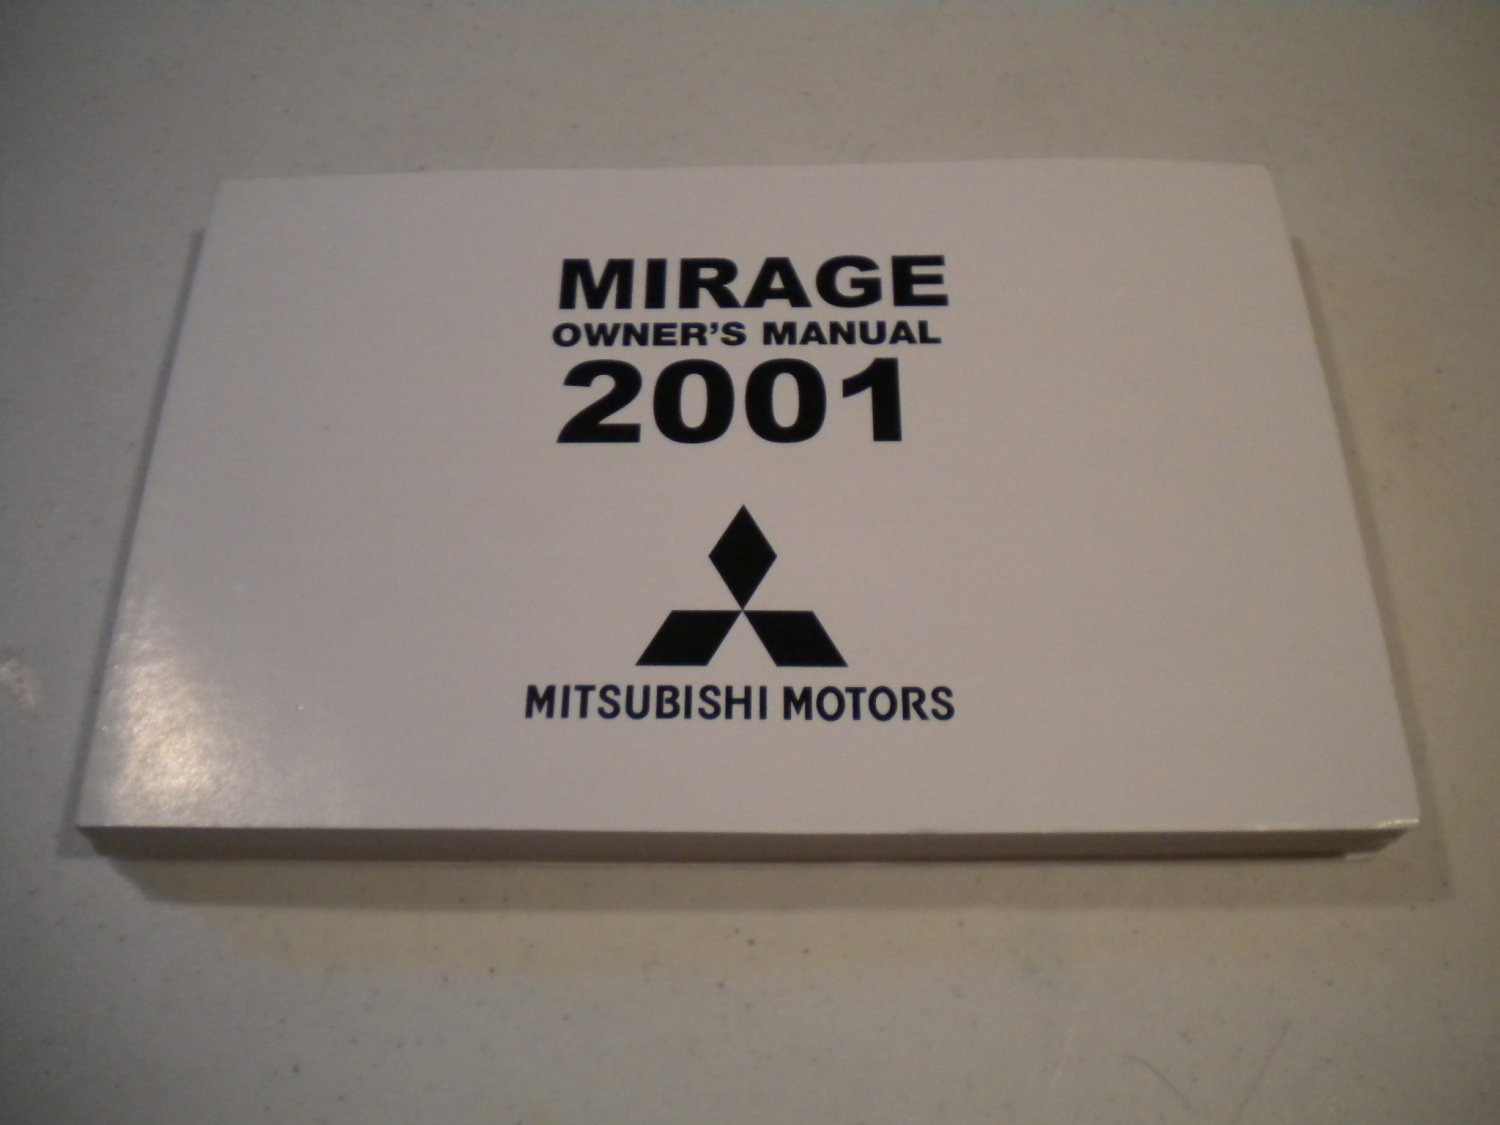 2001 mitsubishi mirage owners manual owner s guide rh ecrater com 2001 mitsubishi mirage owners manual online 2000 mitsubishi mirage owners manual pdf